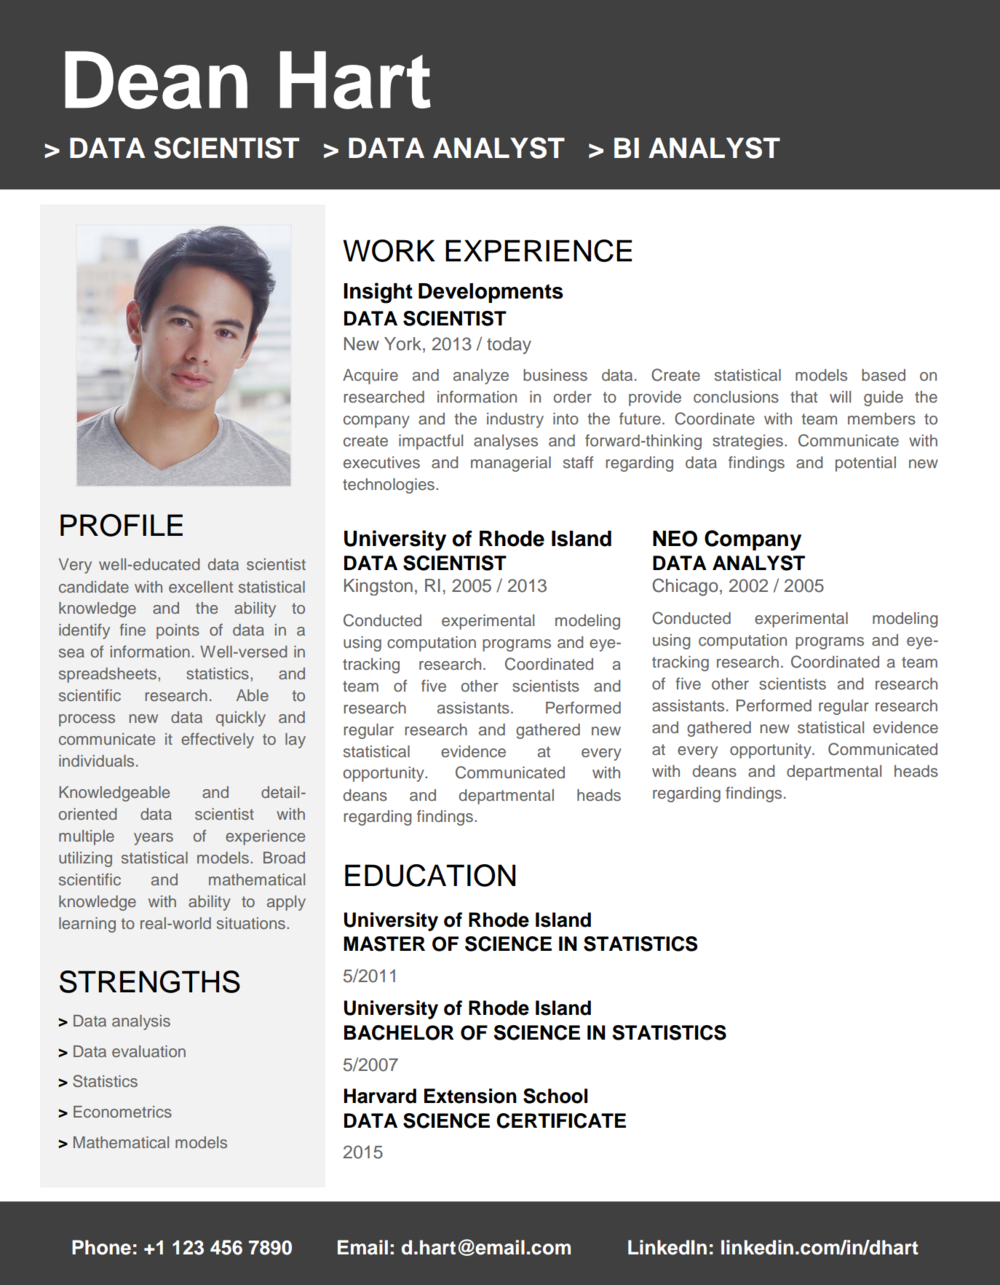 Good Modern Professional Resume + Cover Letter Templates Pack No. 2 Intended For Modern Professional Resume